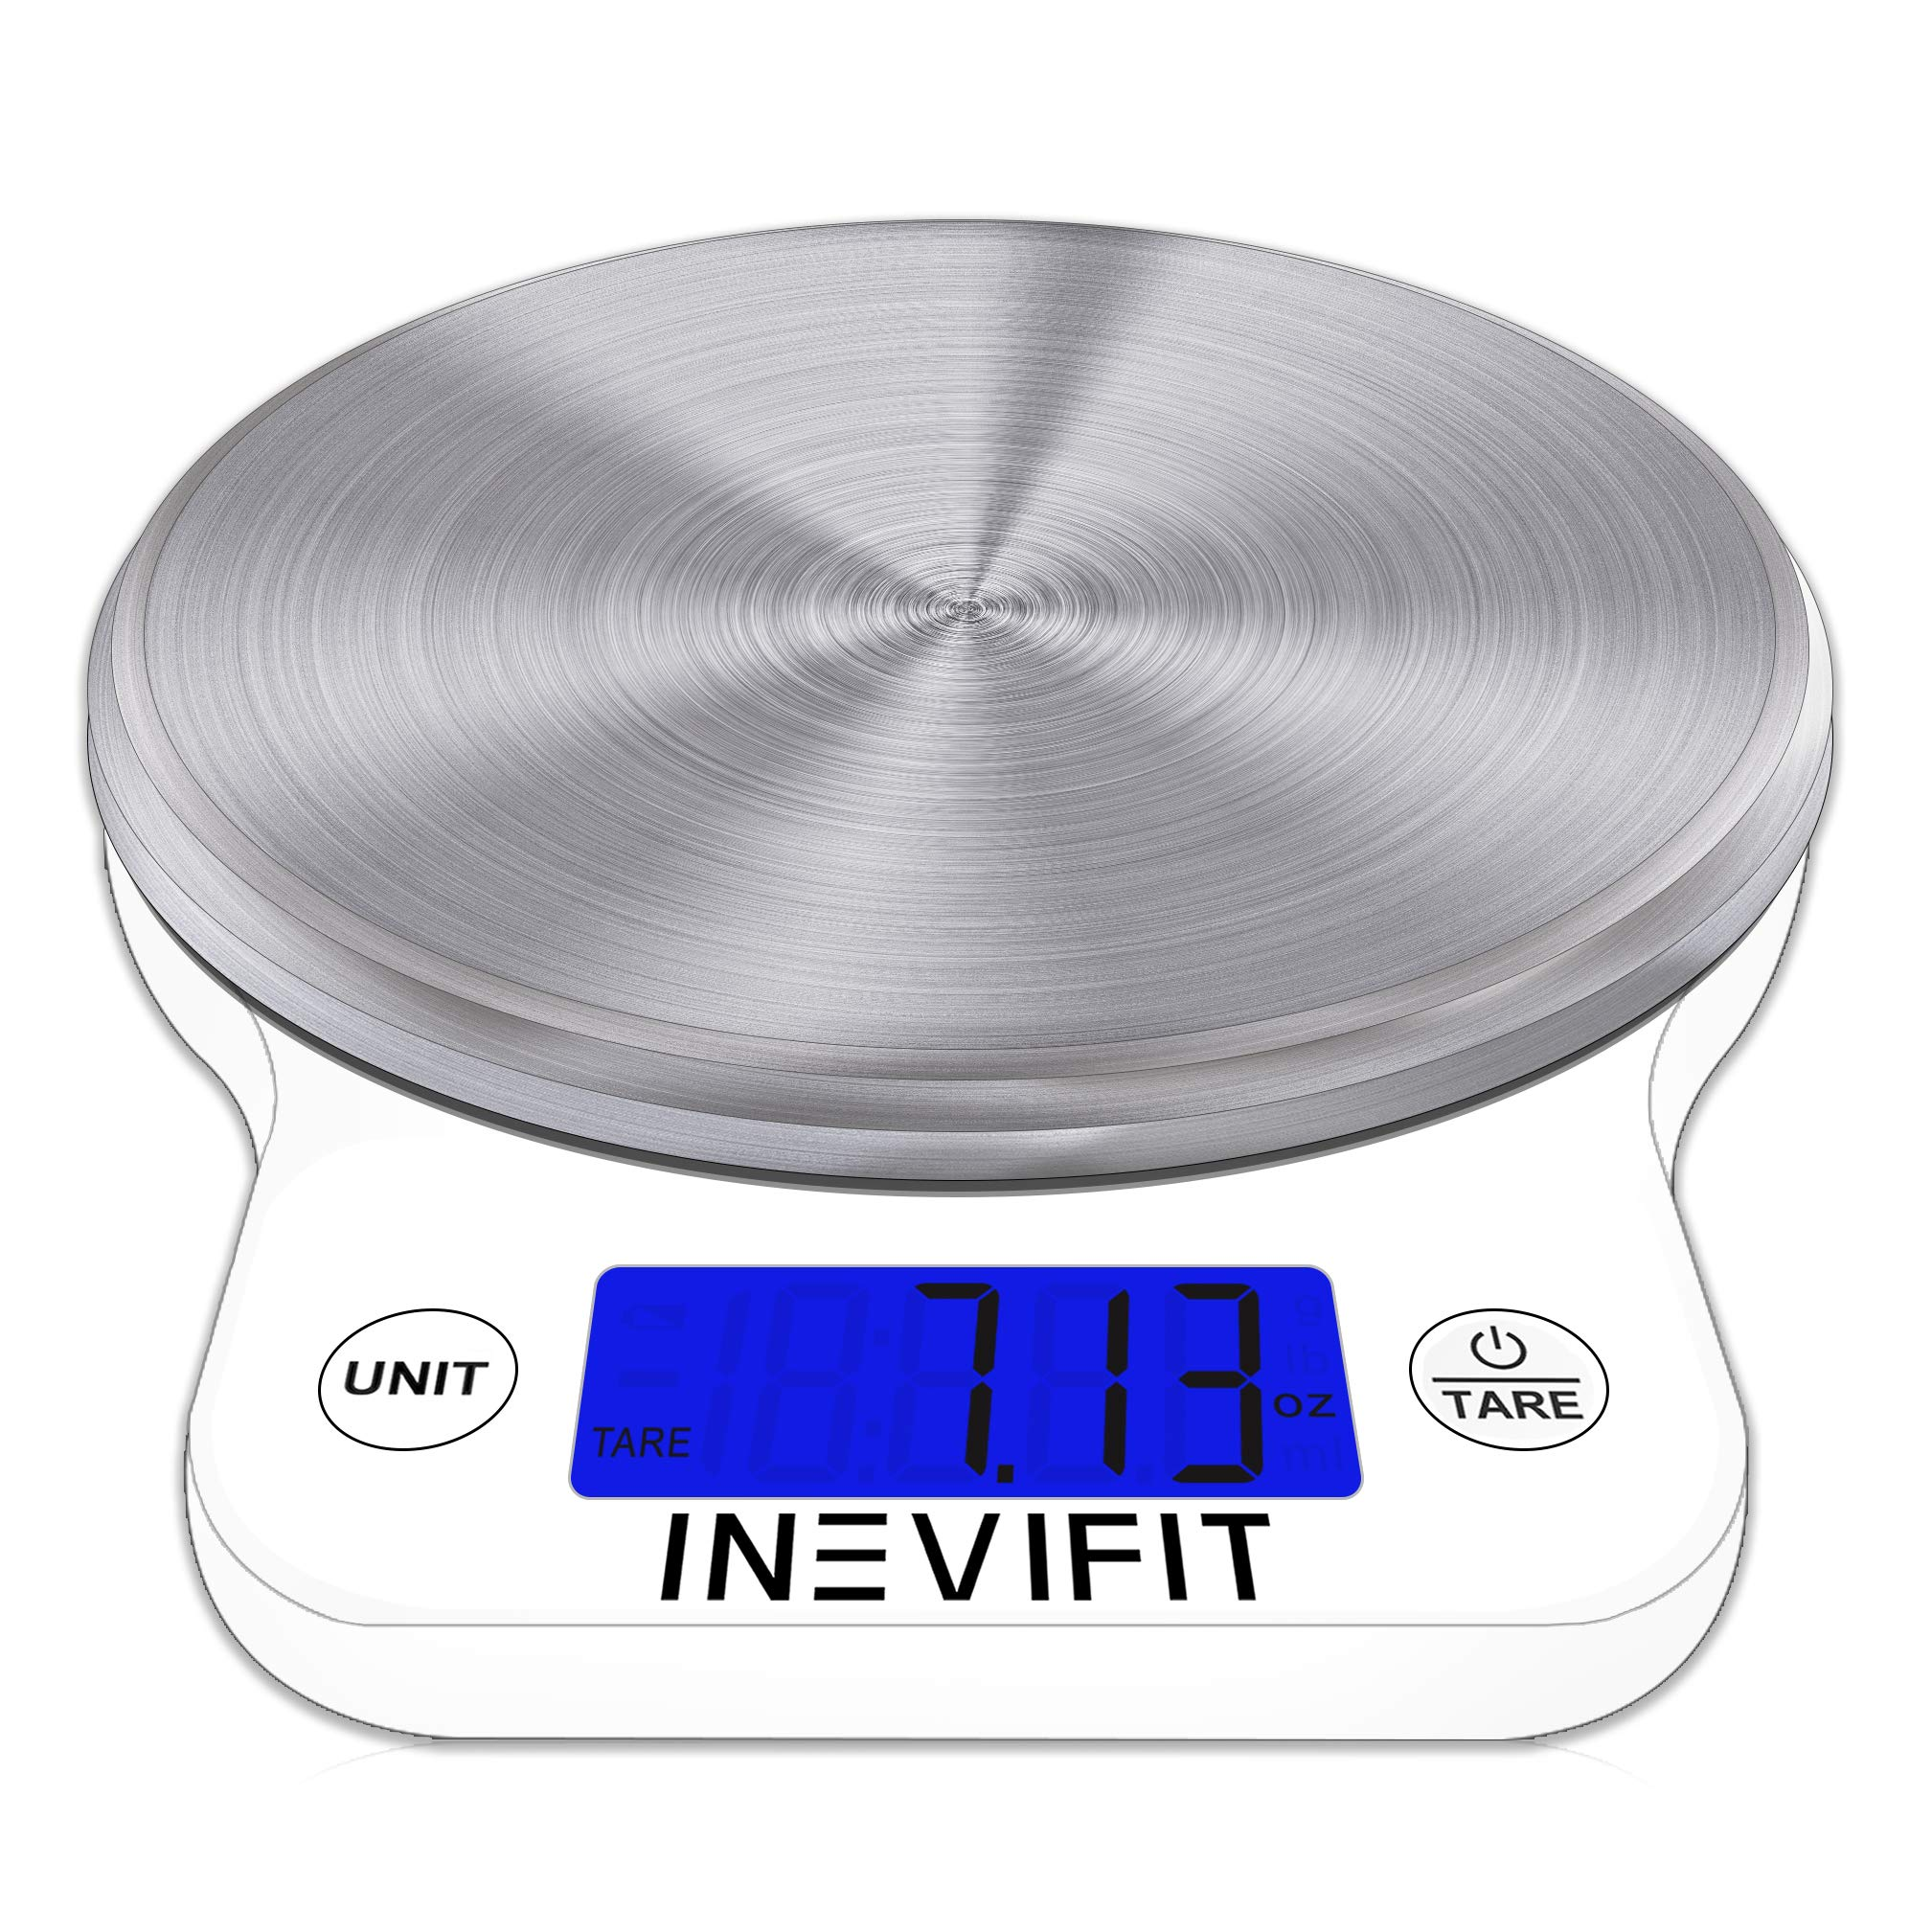 INEVIFIT DIGITAL KITCHEN SCALE, Highly Accurate Multifunction Food Scale 13 lbs 6kgs Max, Clean Modern White with Premium Stainless Steel Finish. Includes Batteries & 5-Year Warranty by INEVIFIT